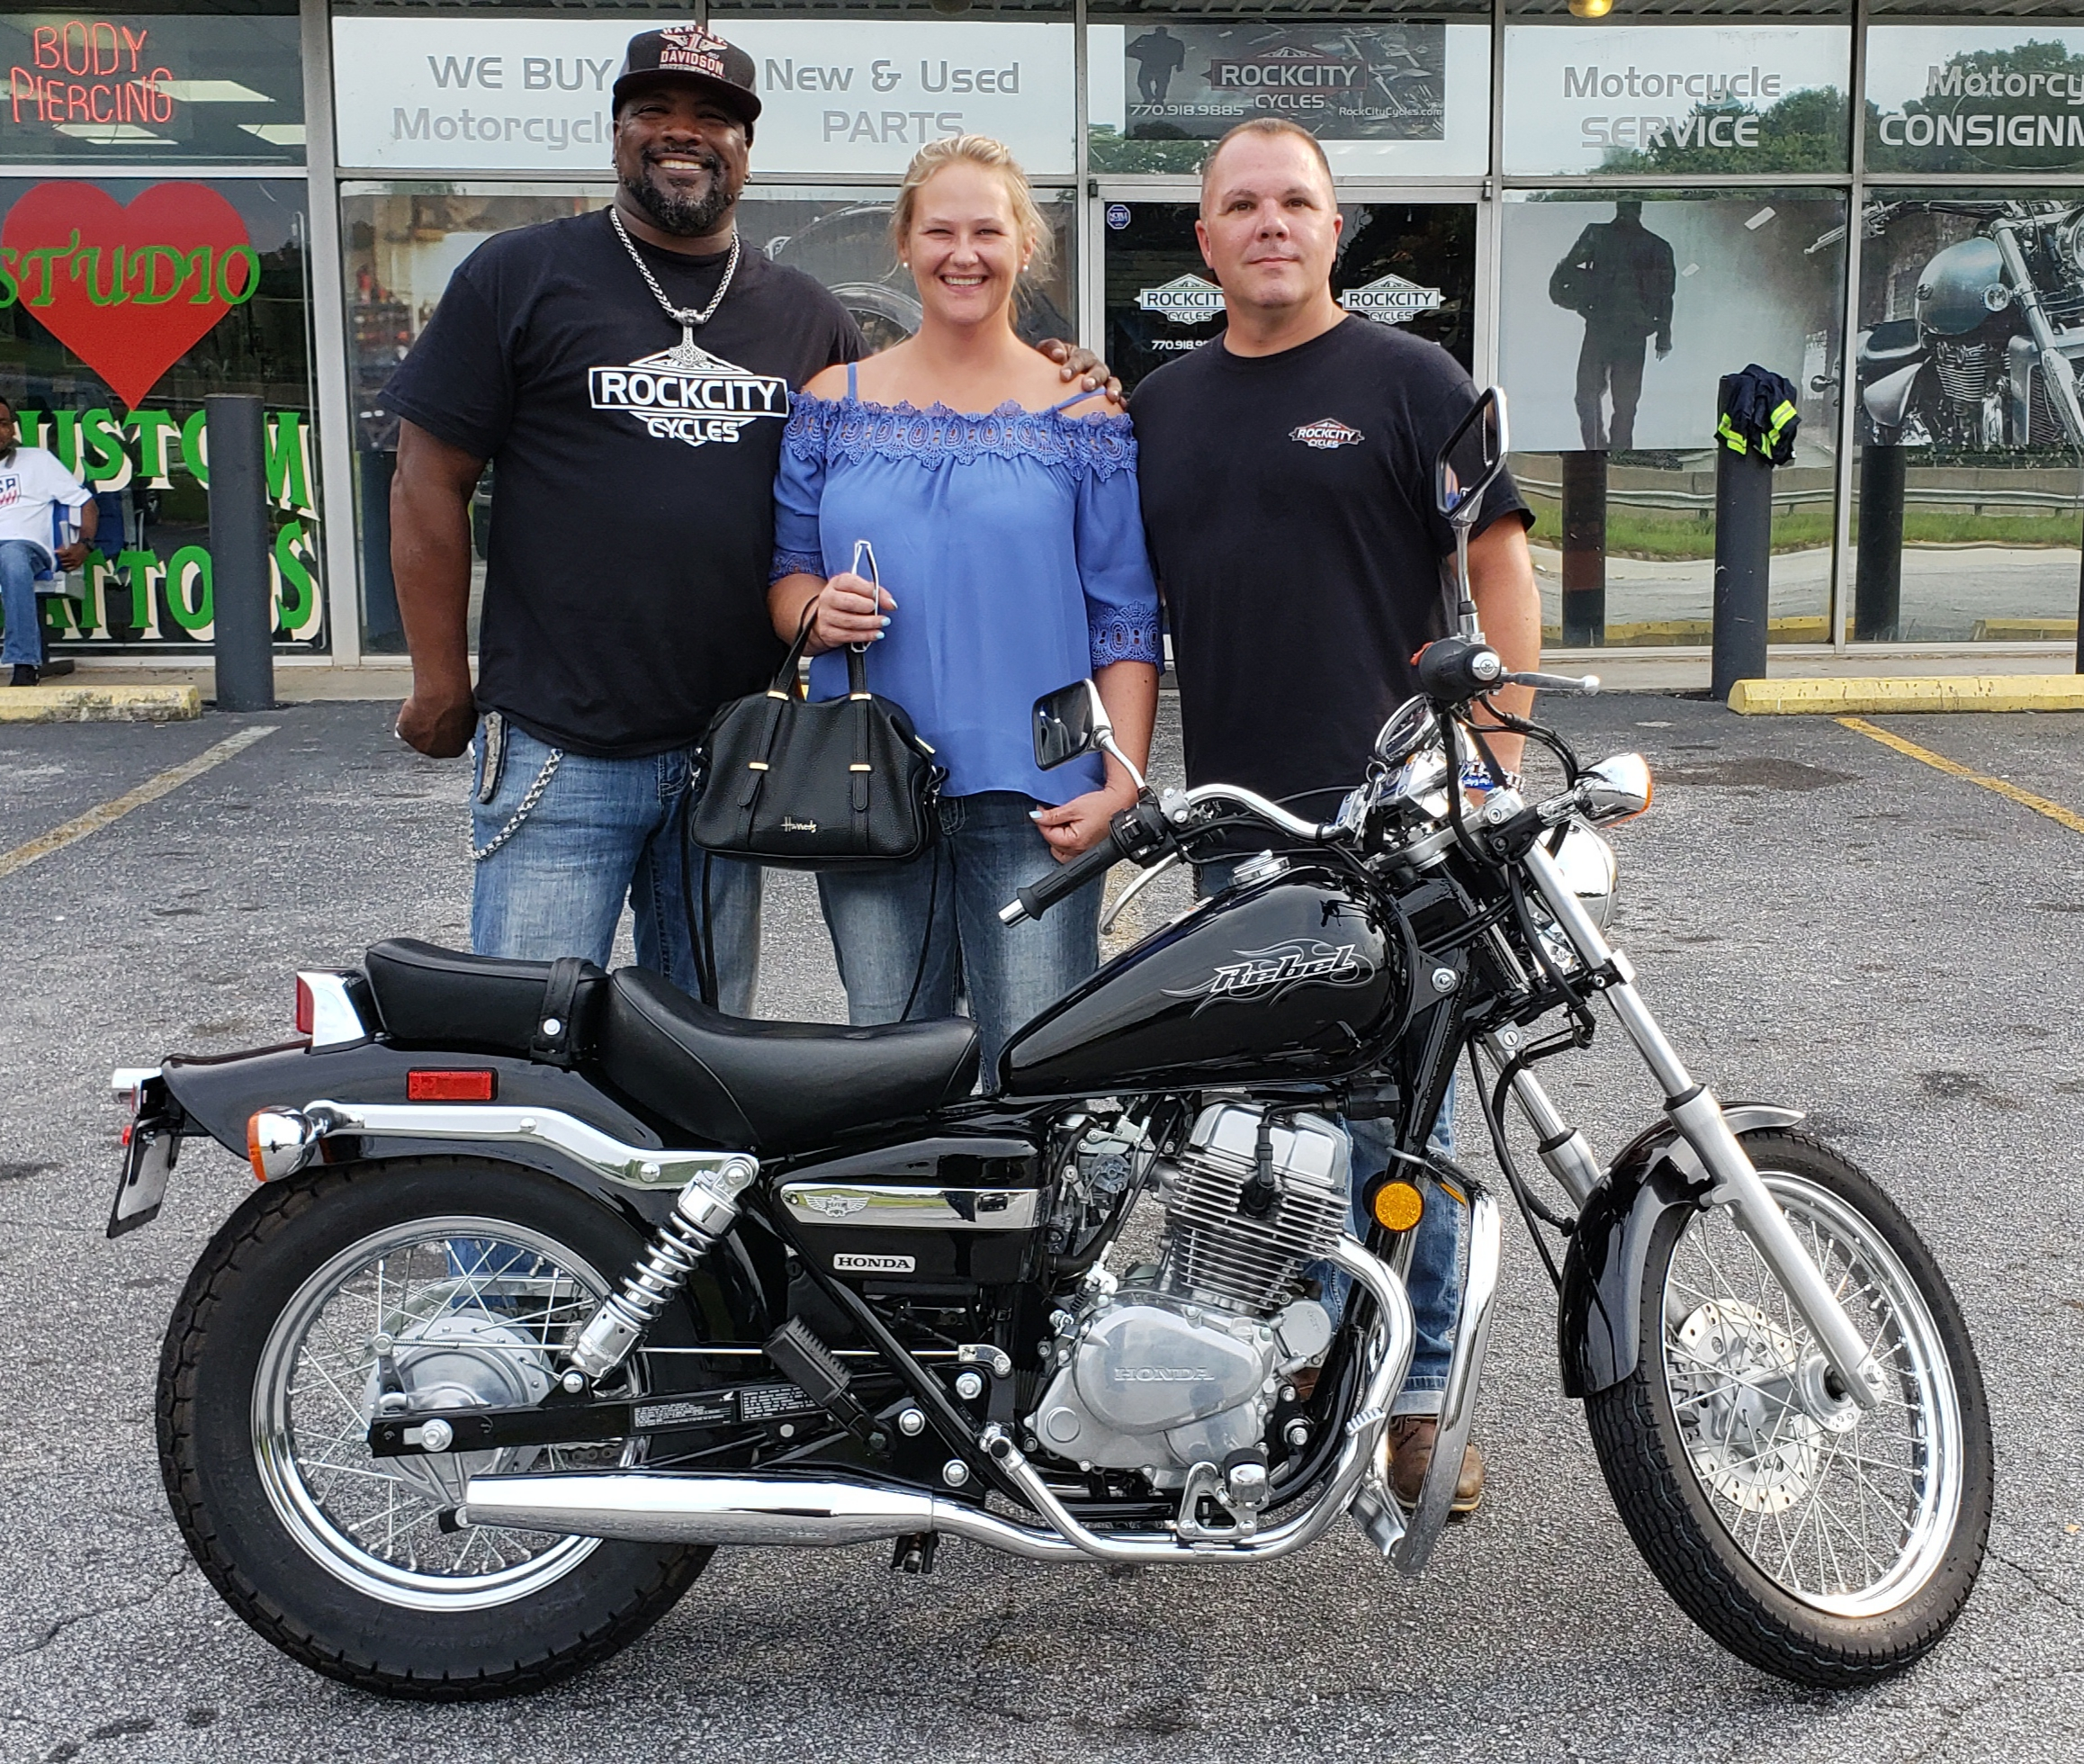 Betty F. with her 2008 Honda Rebel 250